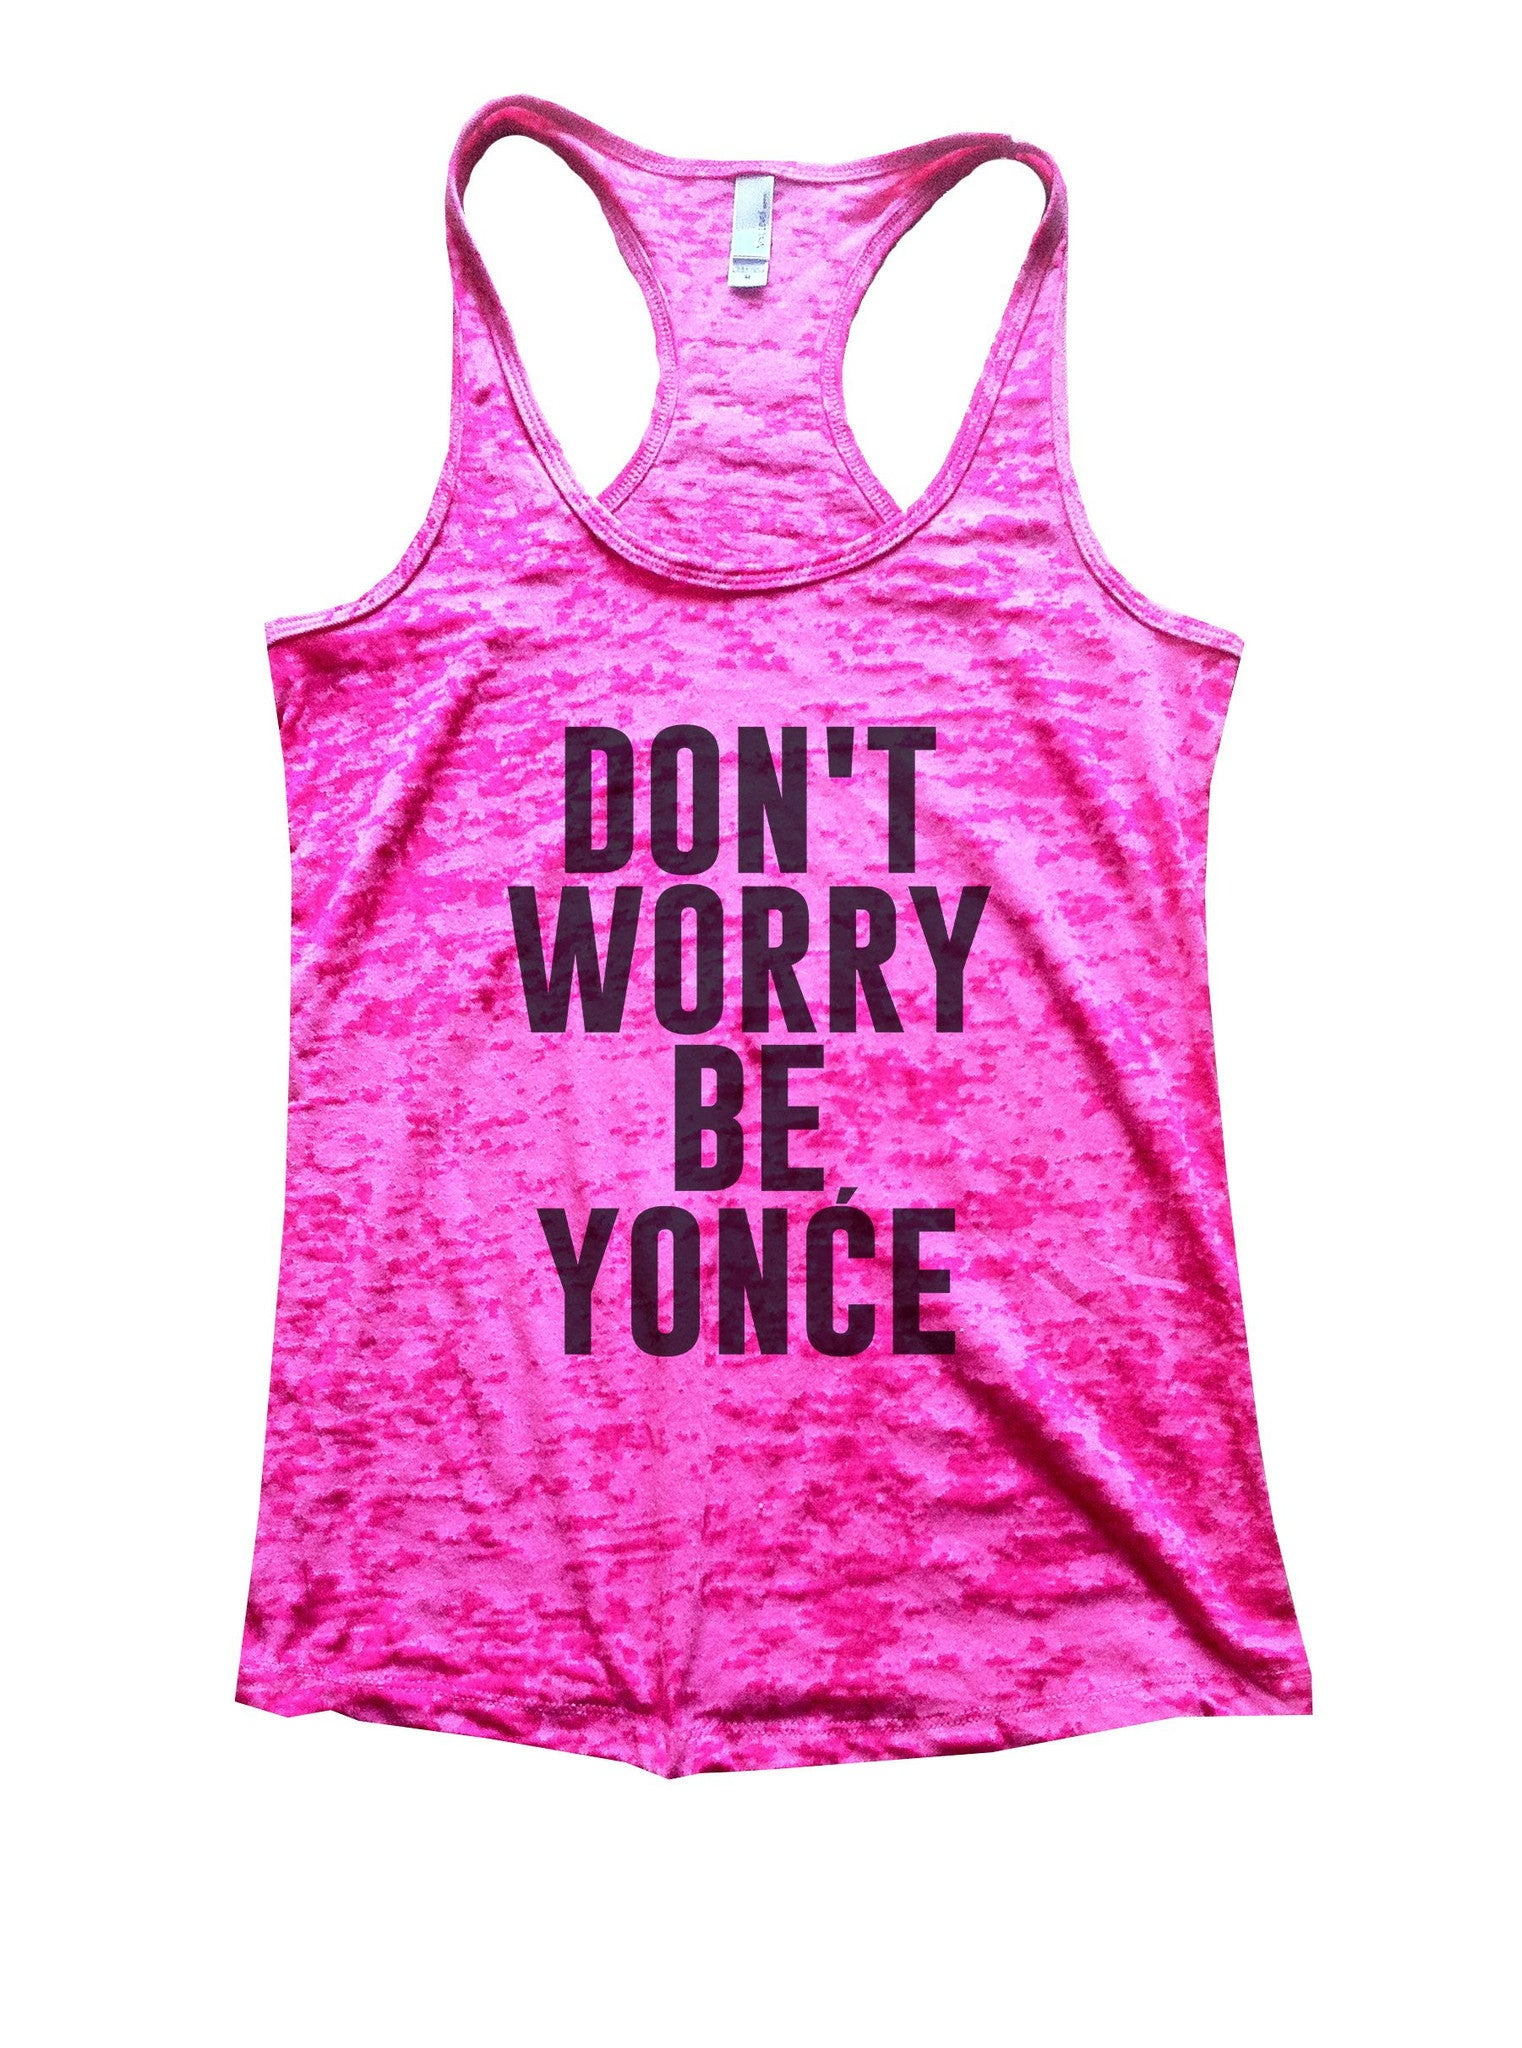 Don't Worry Be Yonce Burnout Tank Top By BurnoutTankTops.com - 934 - Funny Shirts Tank Tops Burnouts and Triblends  - 7